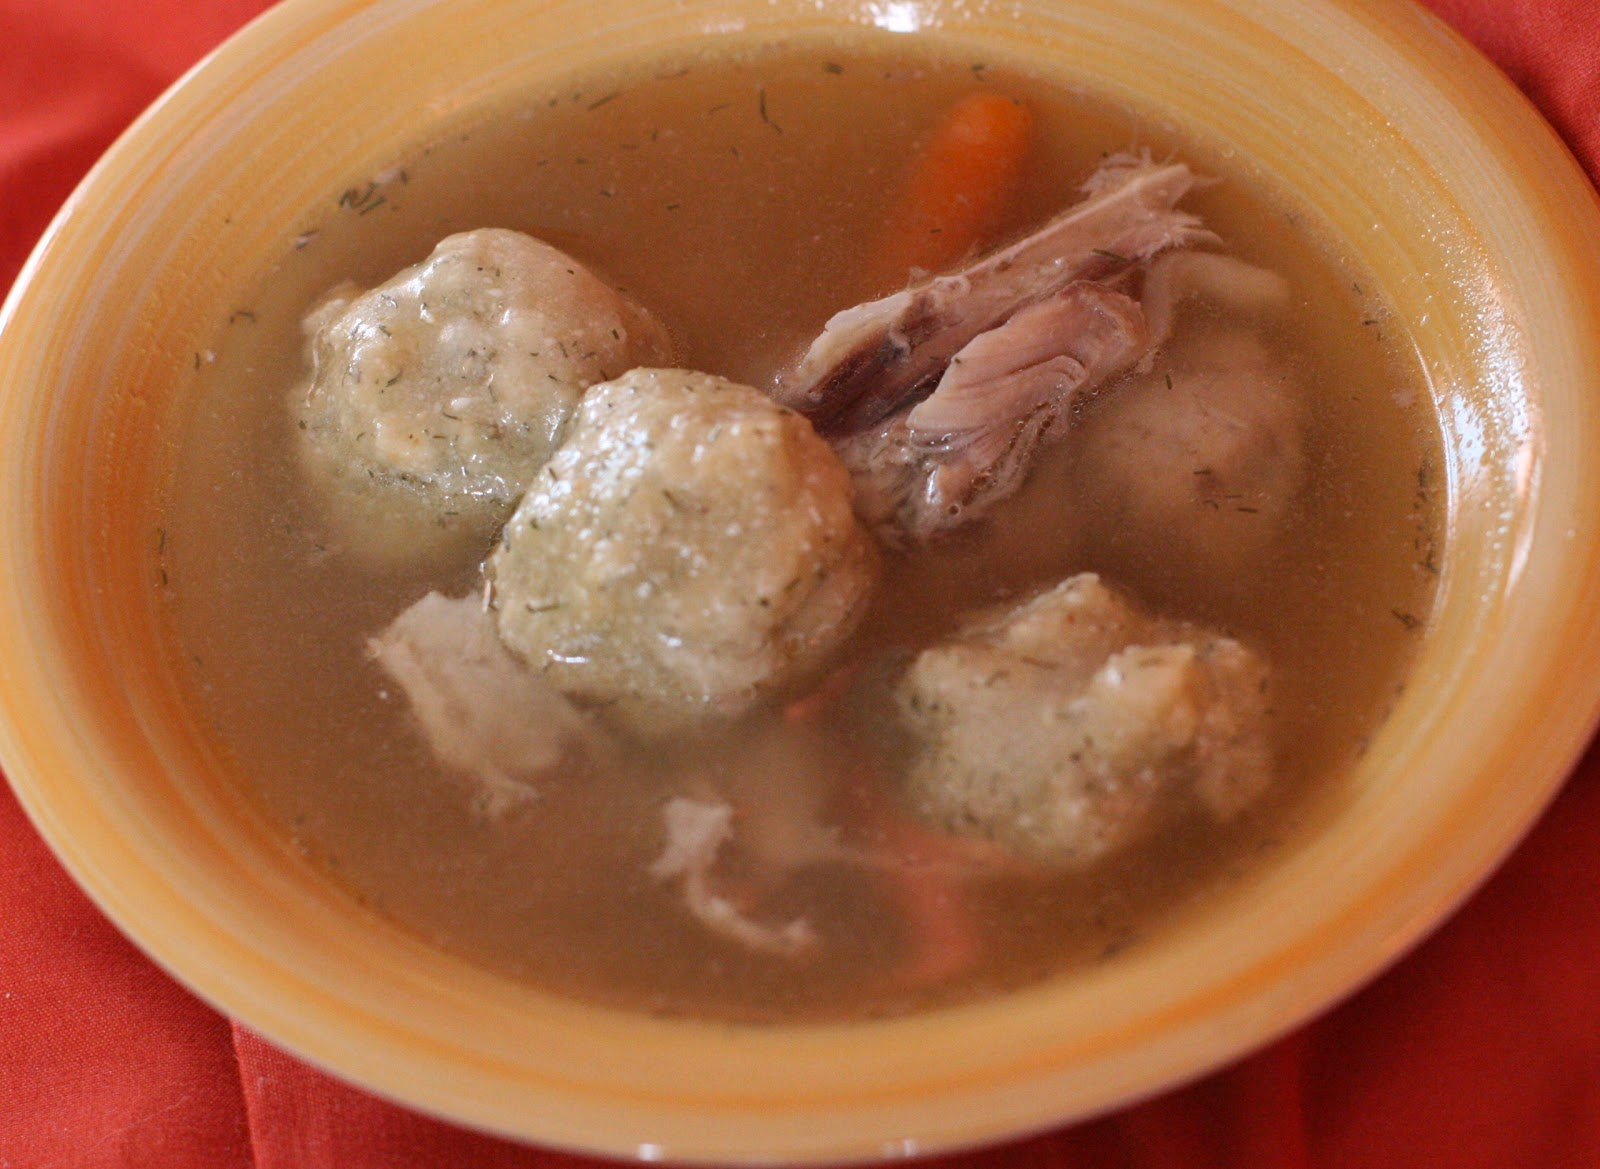 Matzo Ball Soup made at home in the slow cooker. (gluten free matzah ball recipe included if needed).